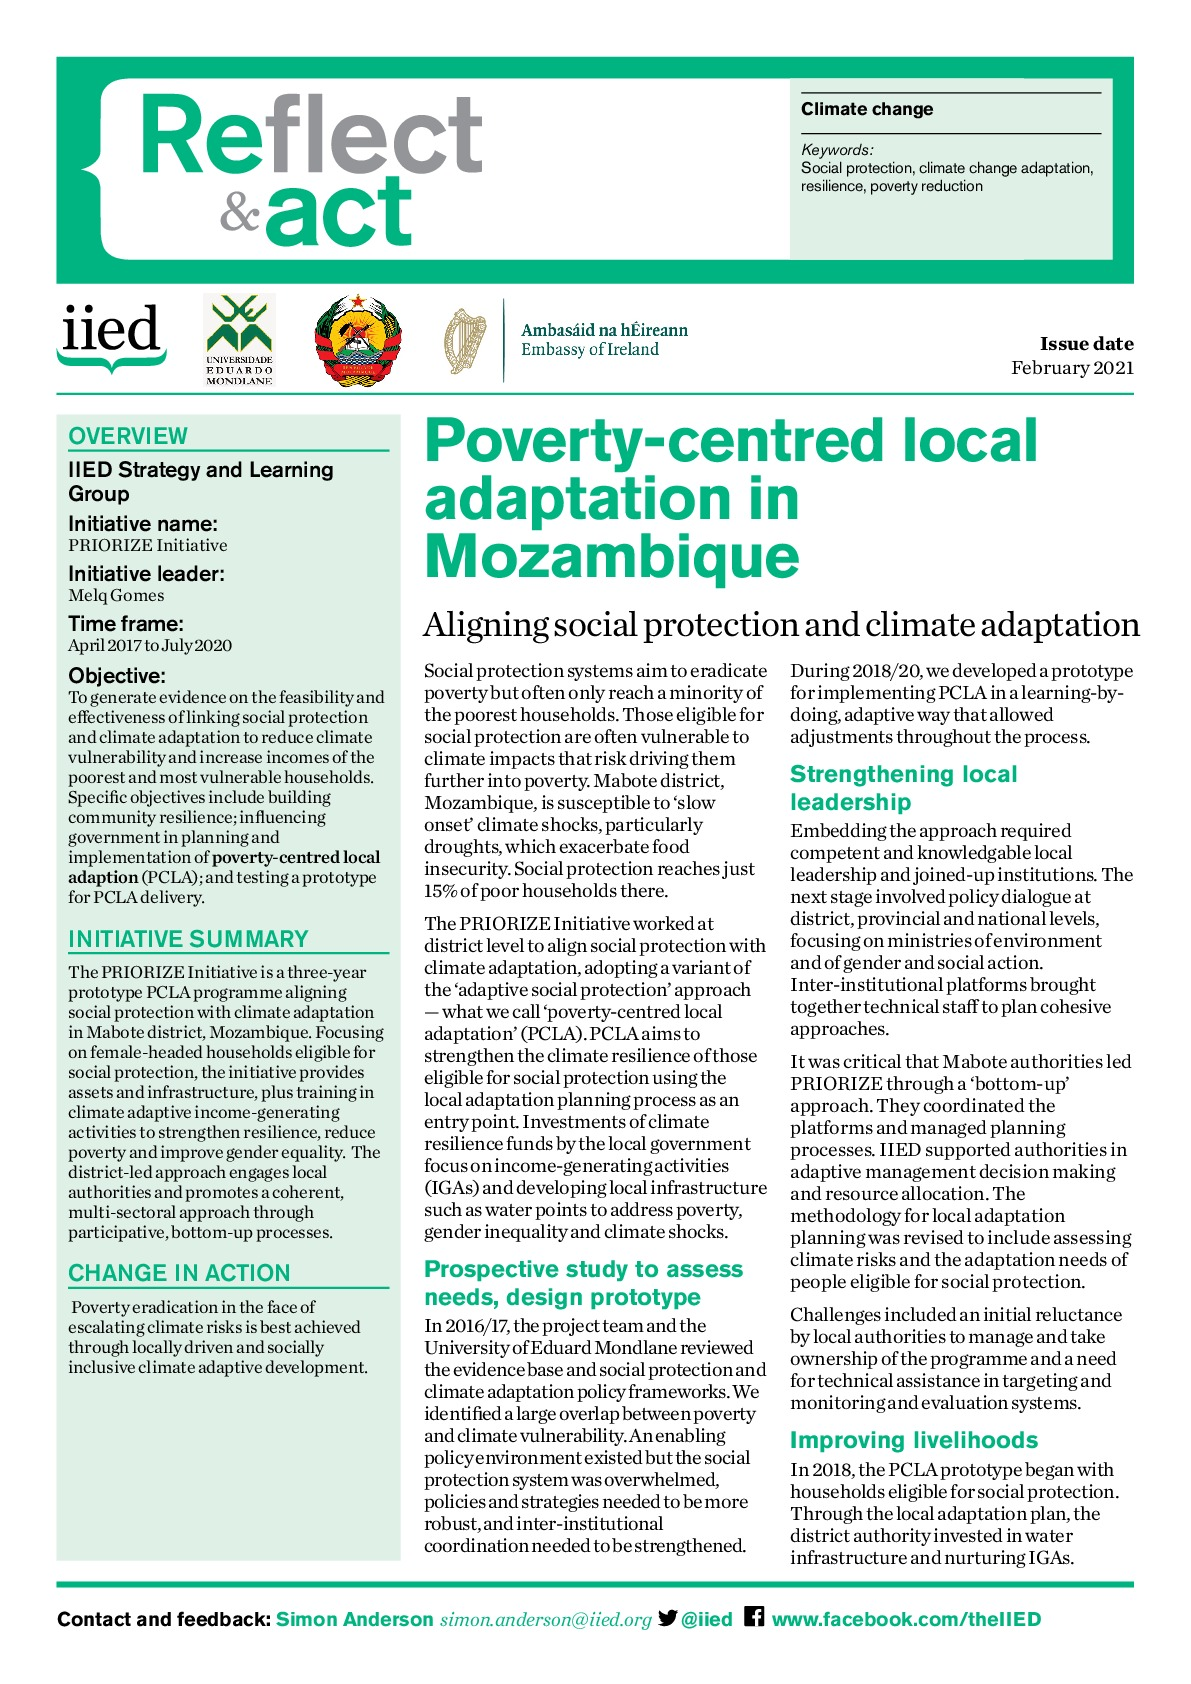 Poverty-centred local adaptation in Mozambique